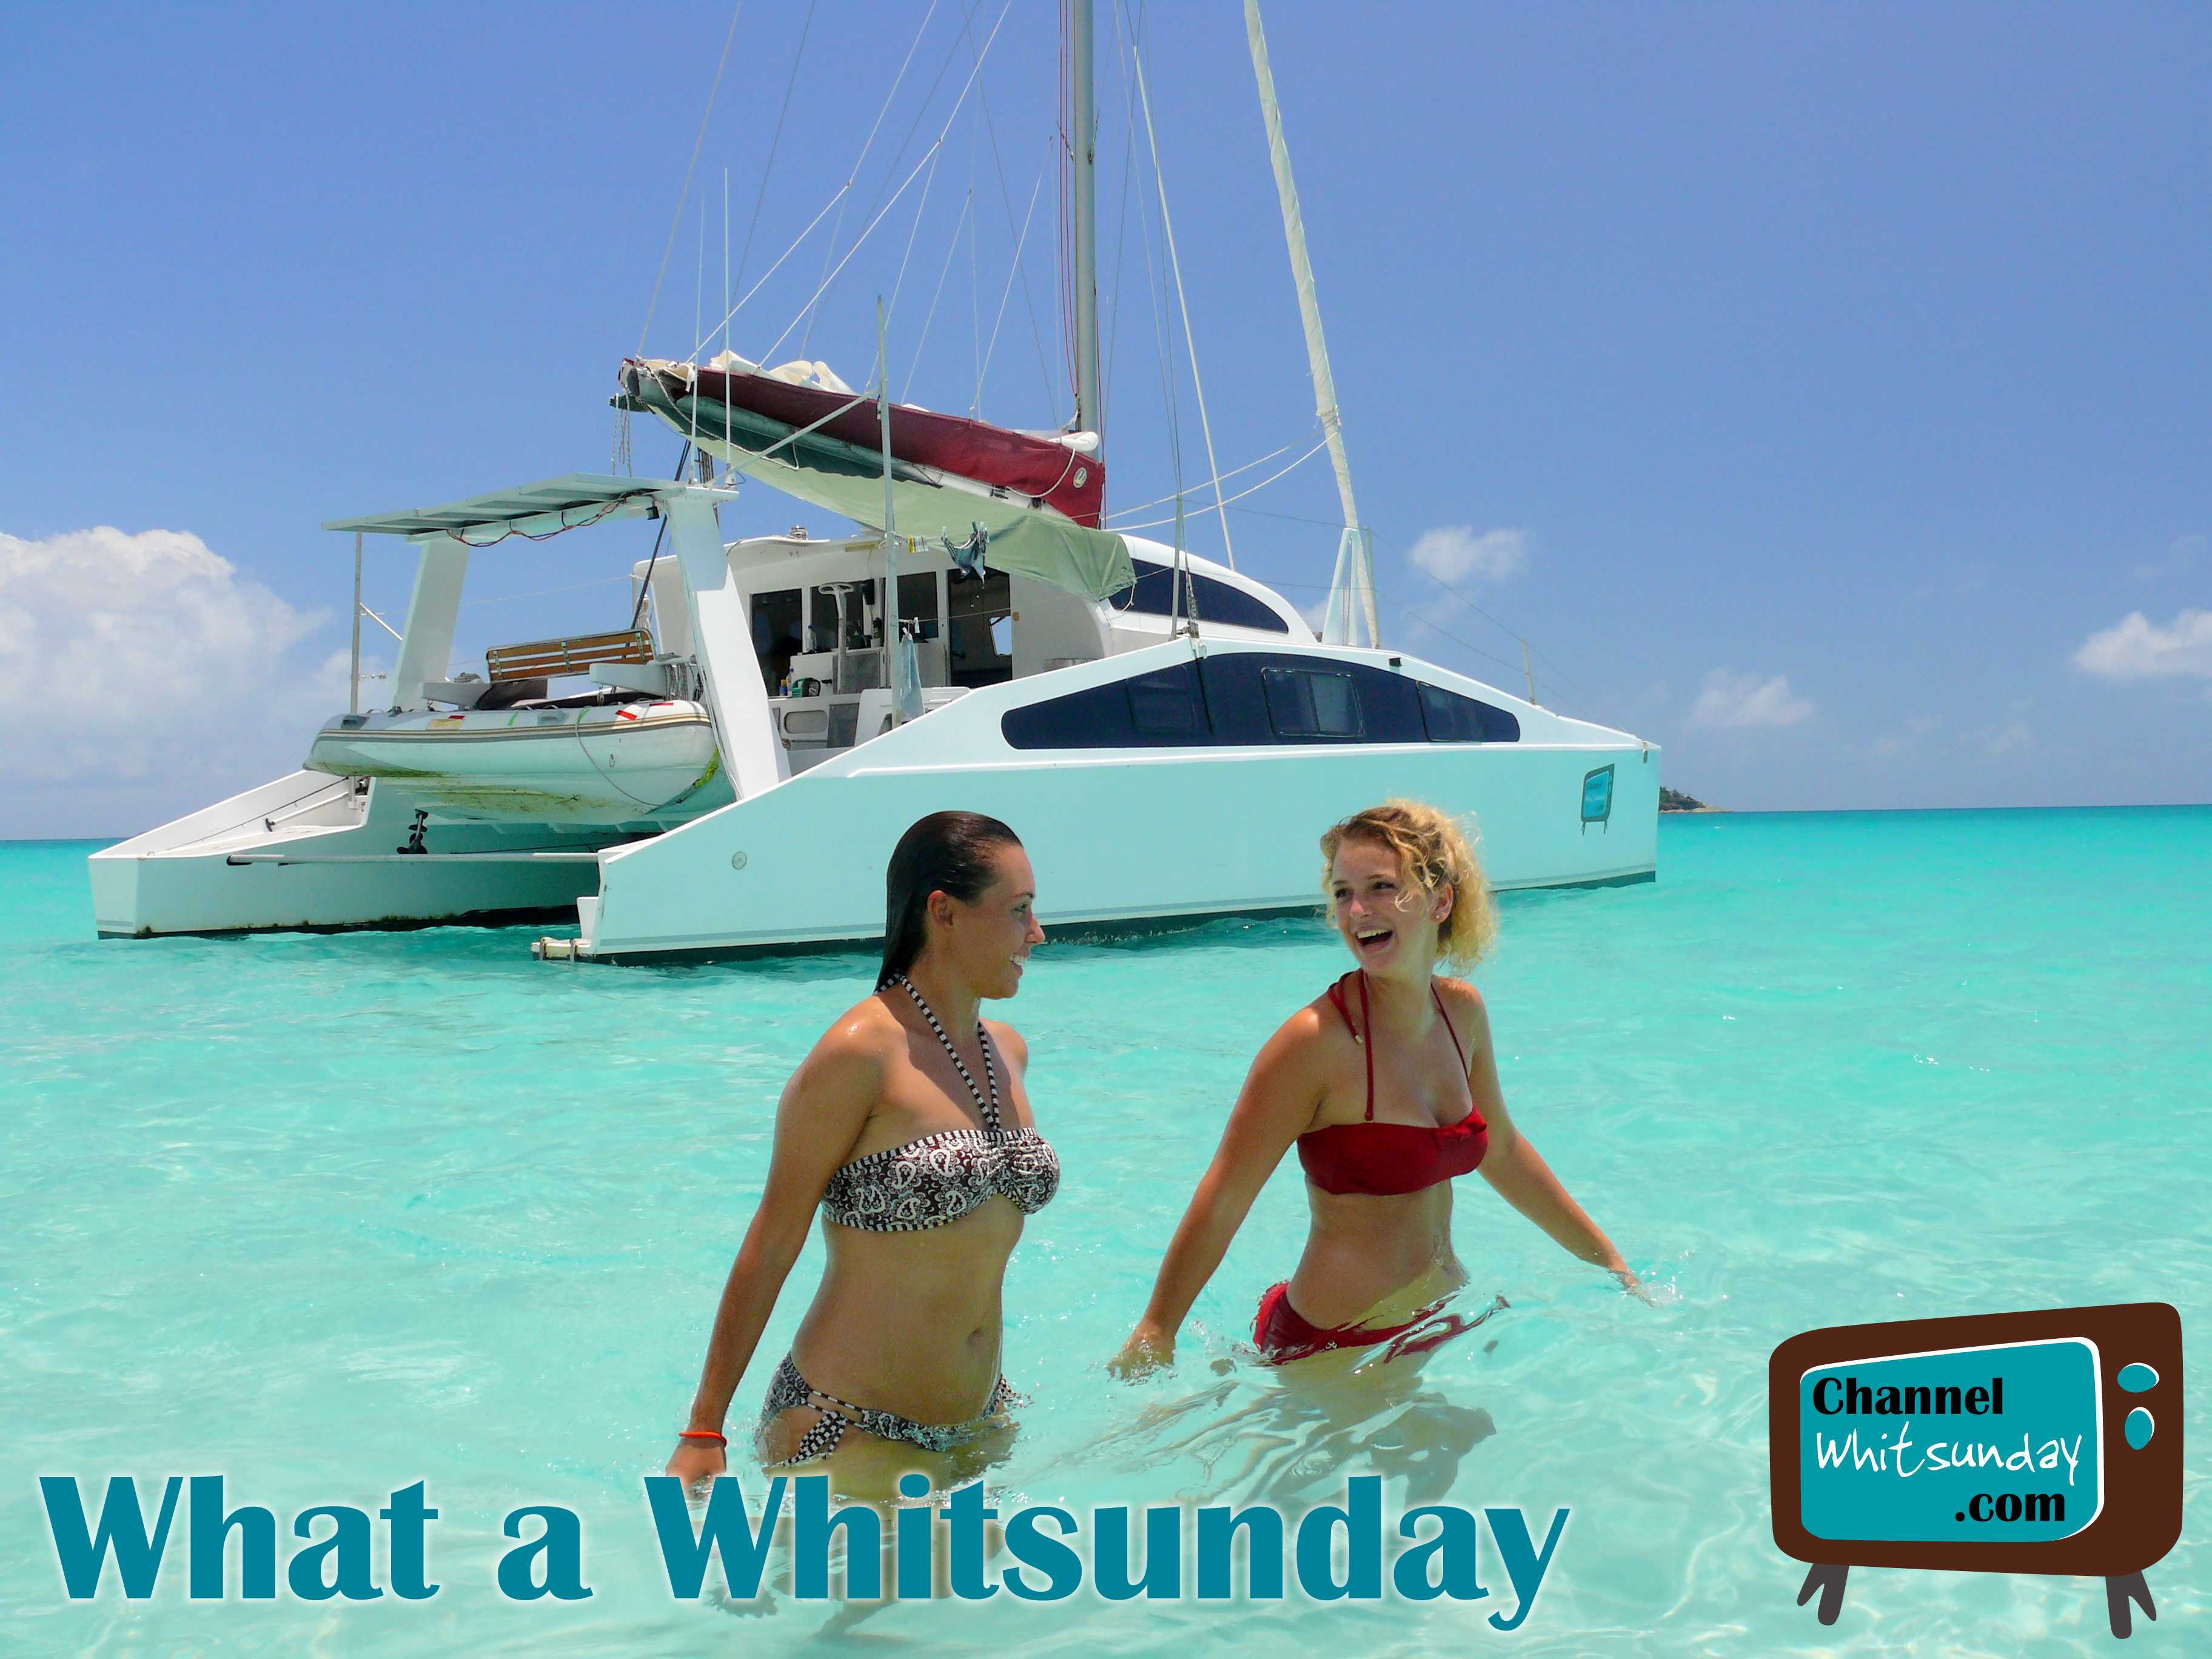 Christmas in the Whitsundays - What did you expect?